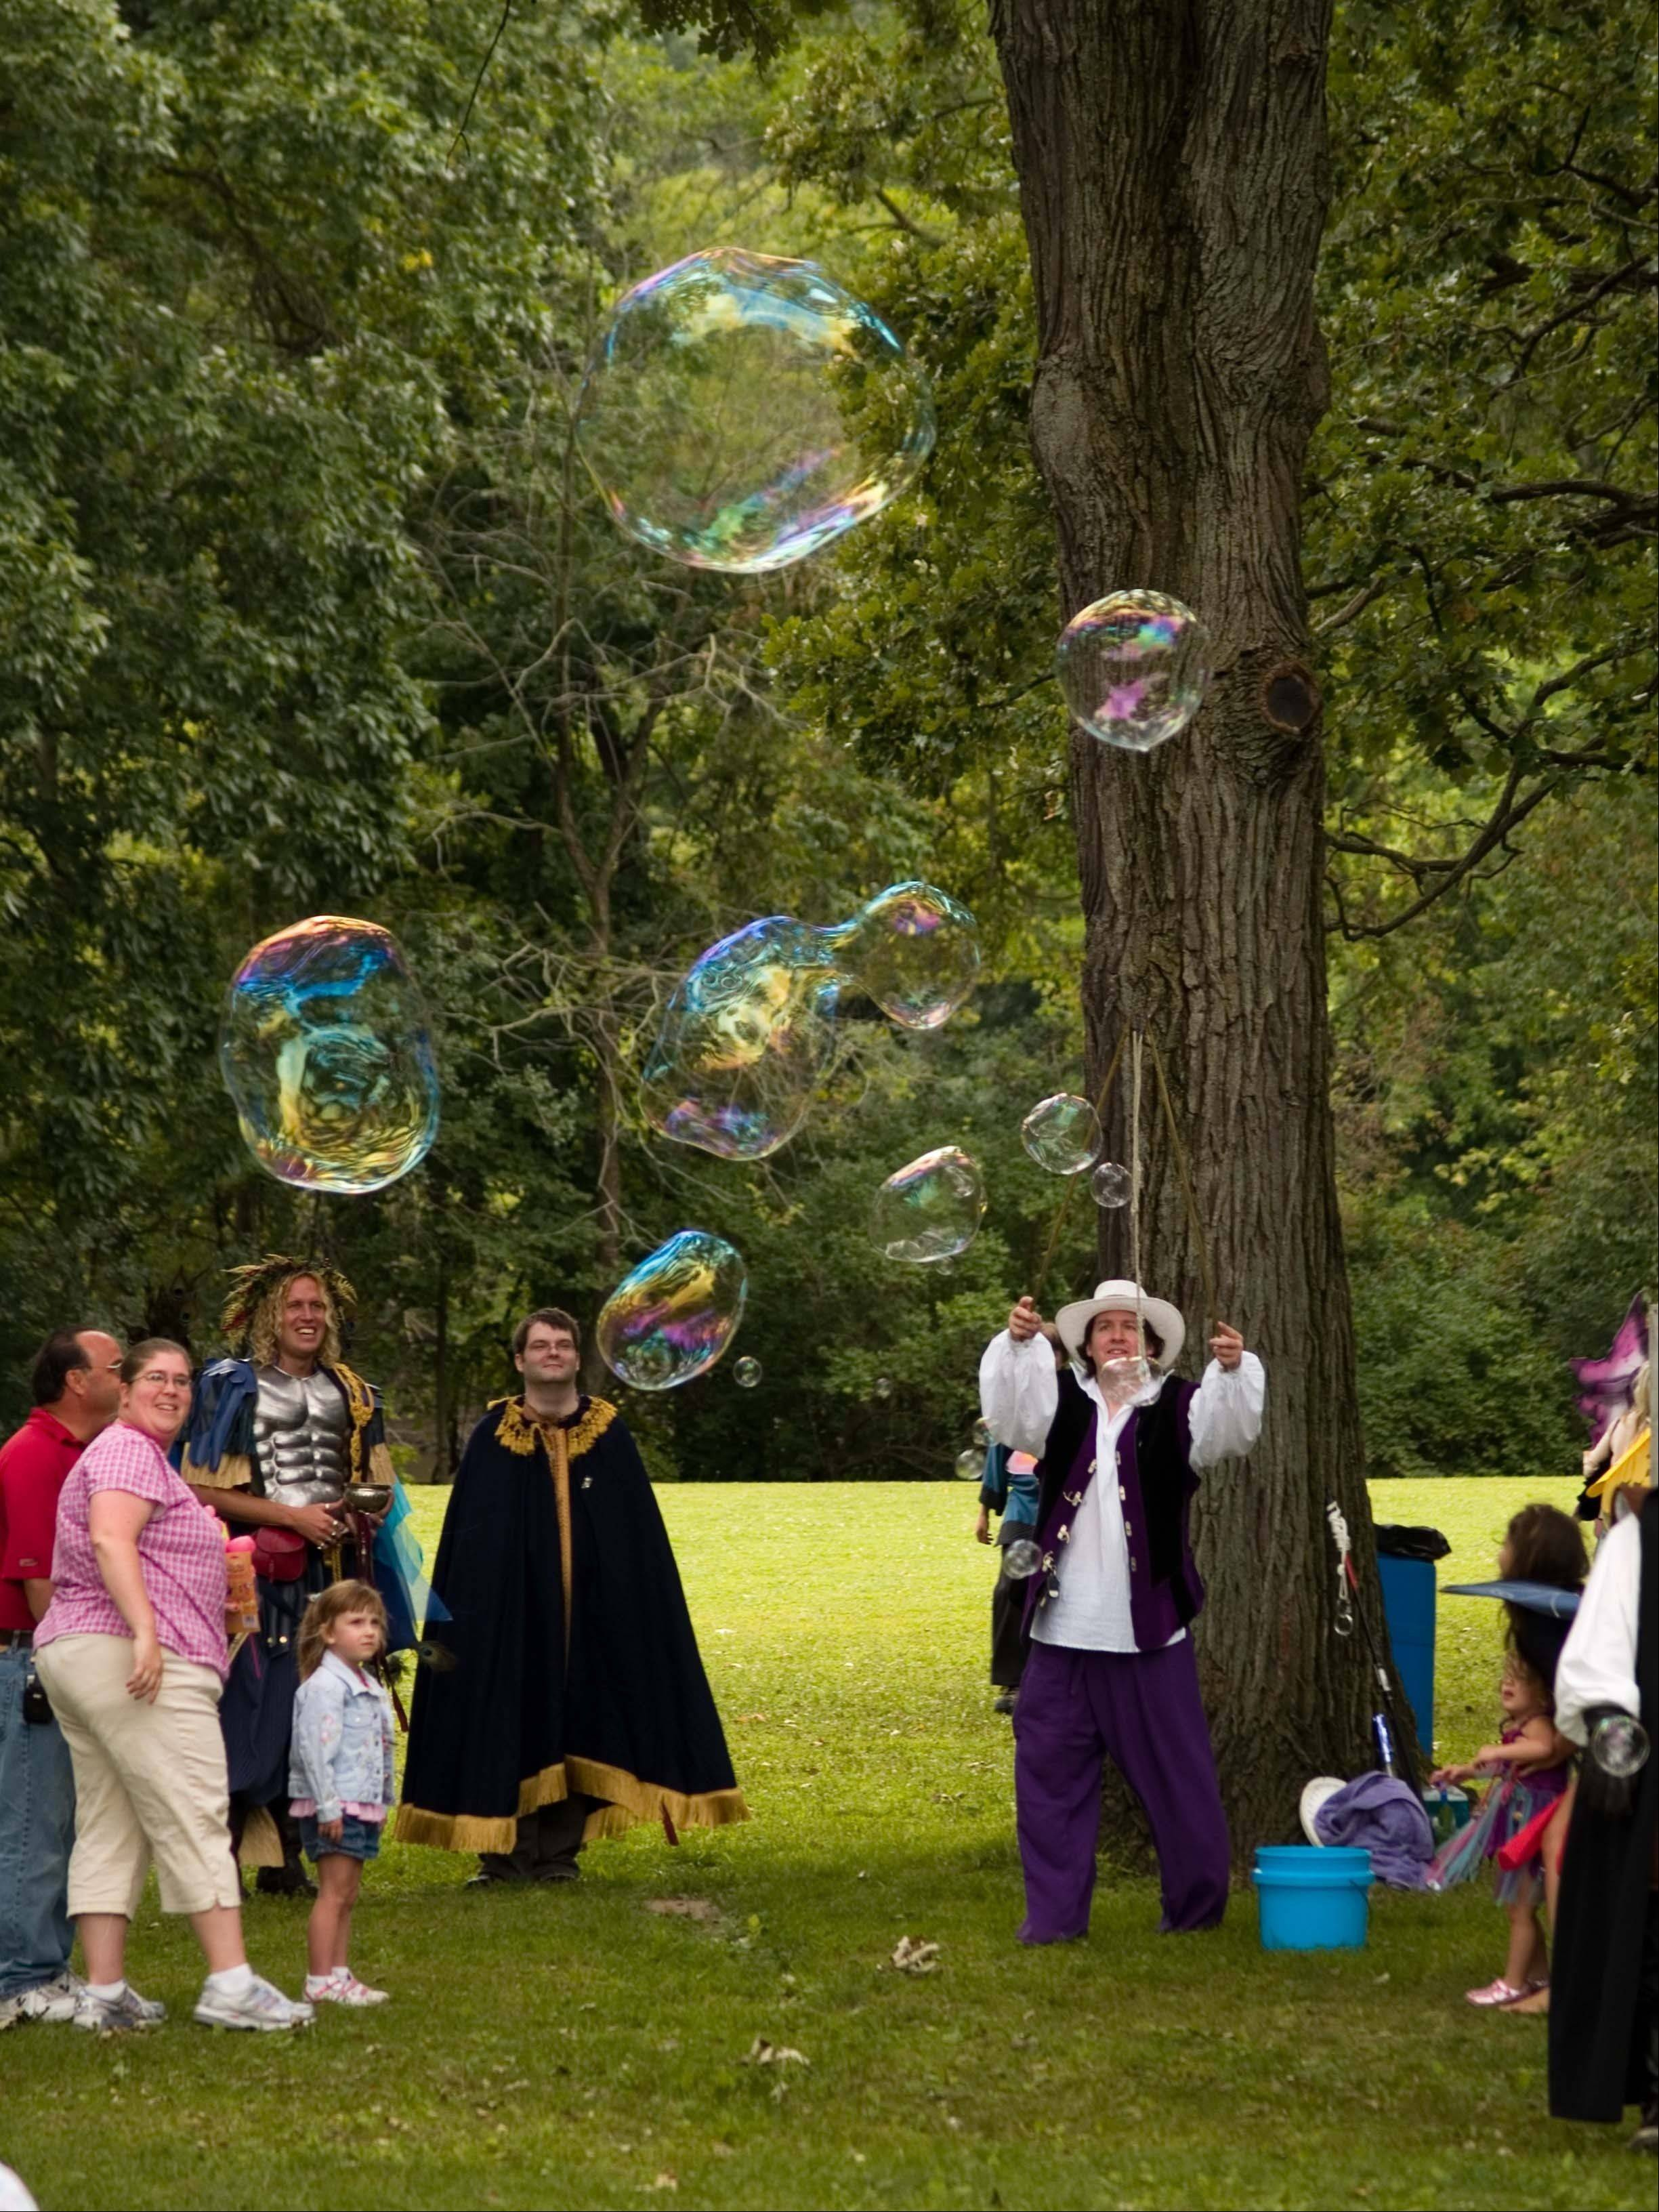 Geoff Akins wows the crowd with his Bubble Show at the 2010 festival.